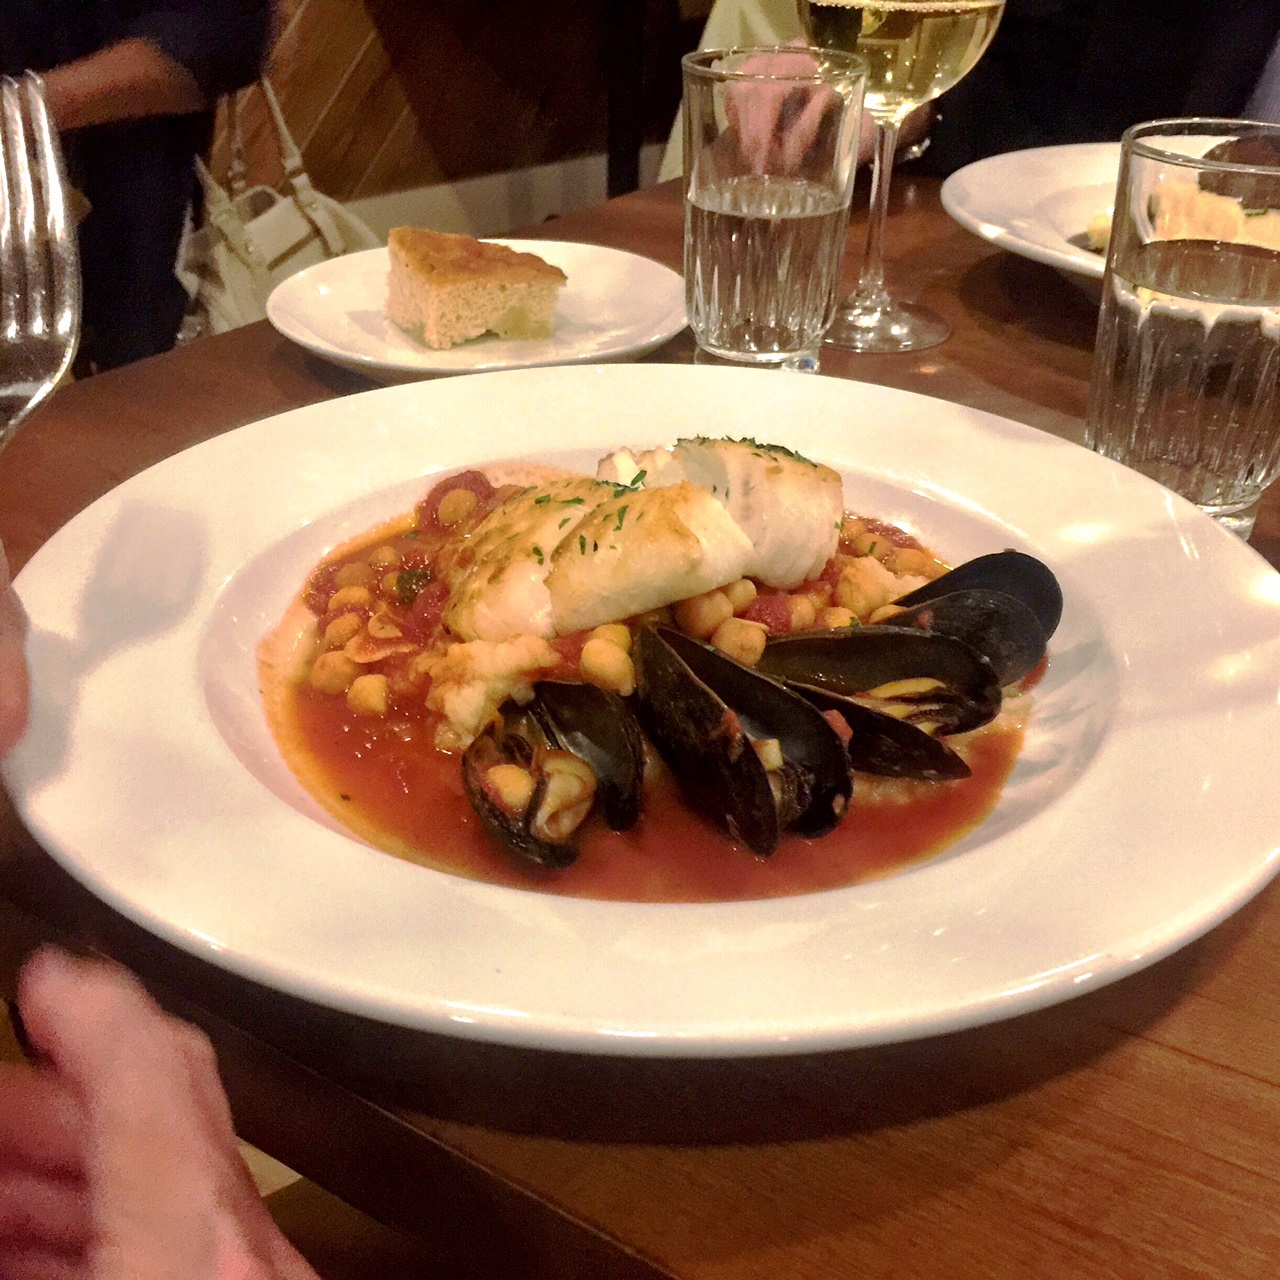 Seared Cod and mussels